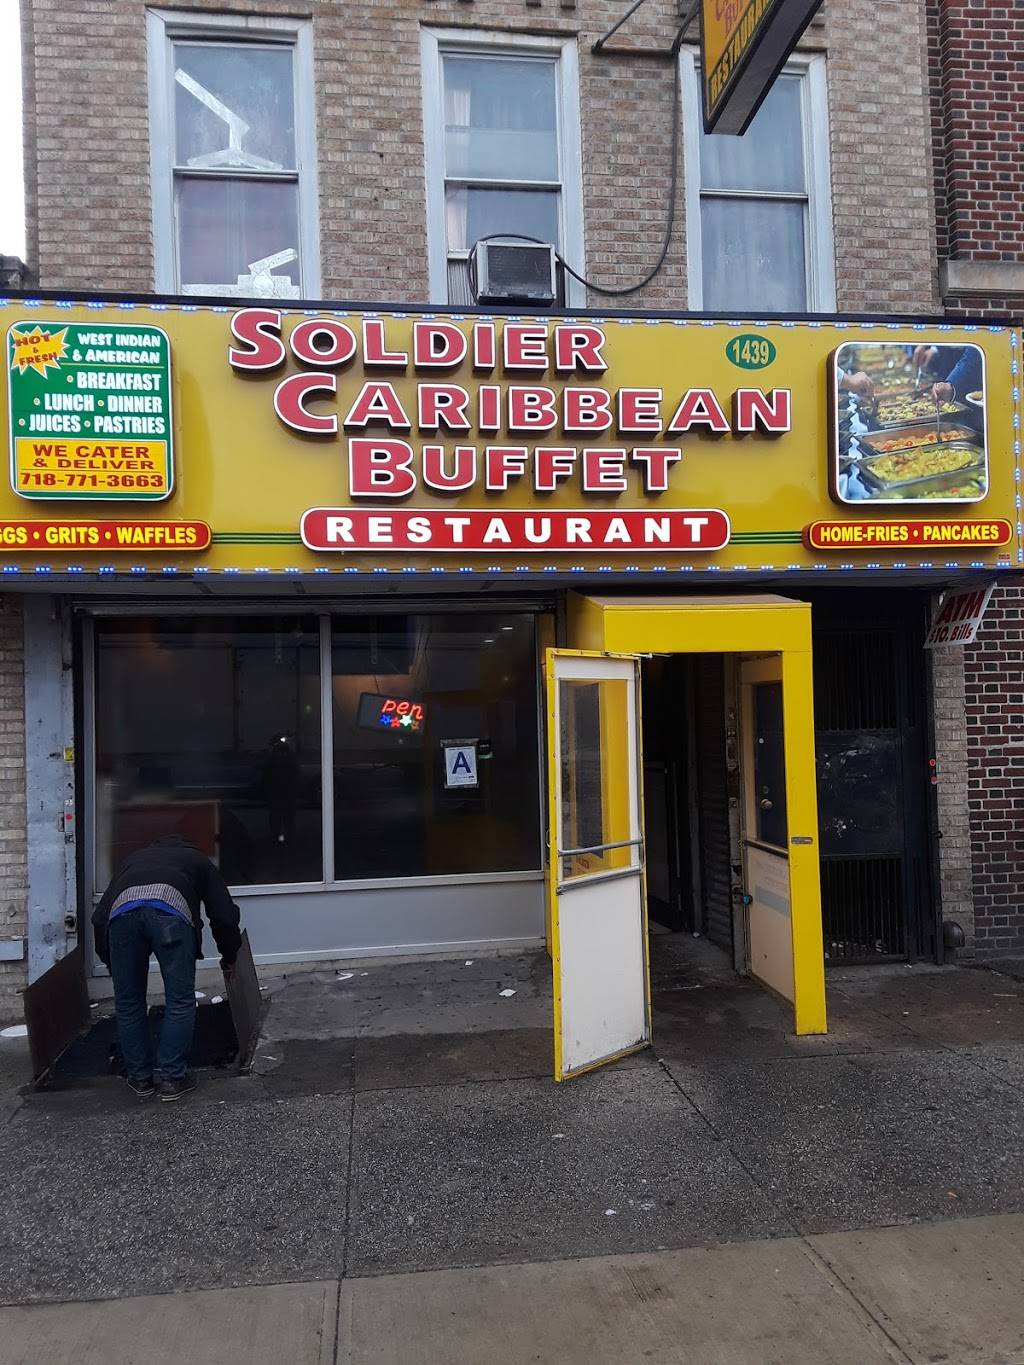 Soldiers Caribbean Buffet | restaurant | 3910, 1439, St Johns Pl, Brooklyn, NY 11213, USA | 7187713663 OR +1 718-771-3663